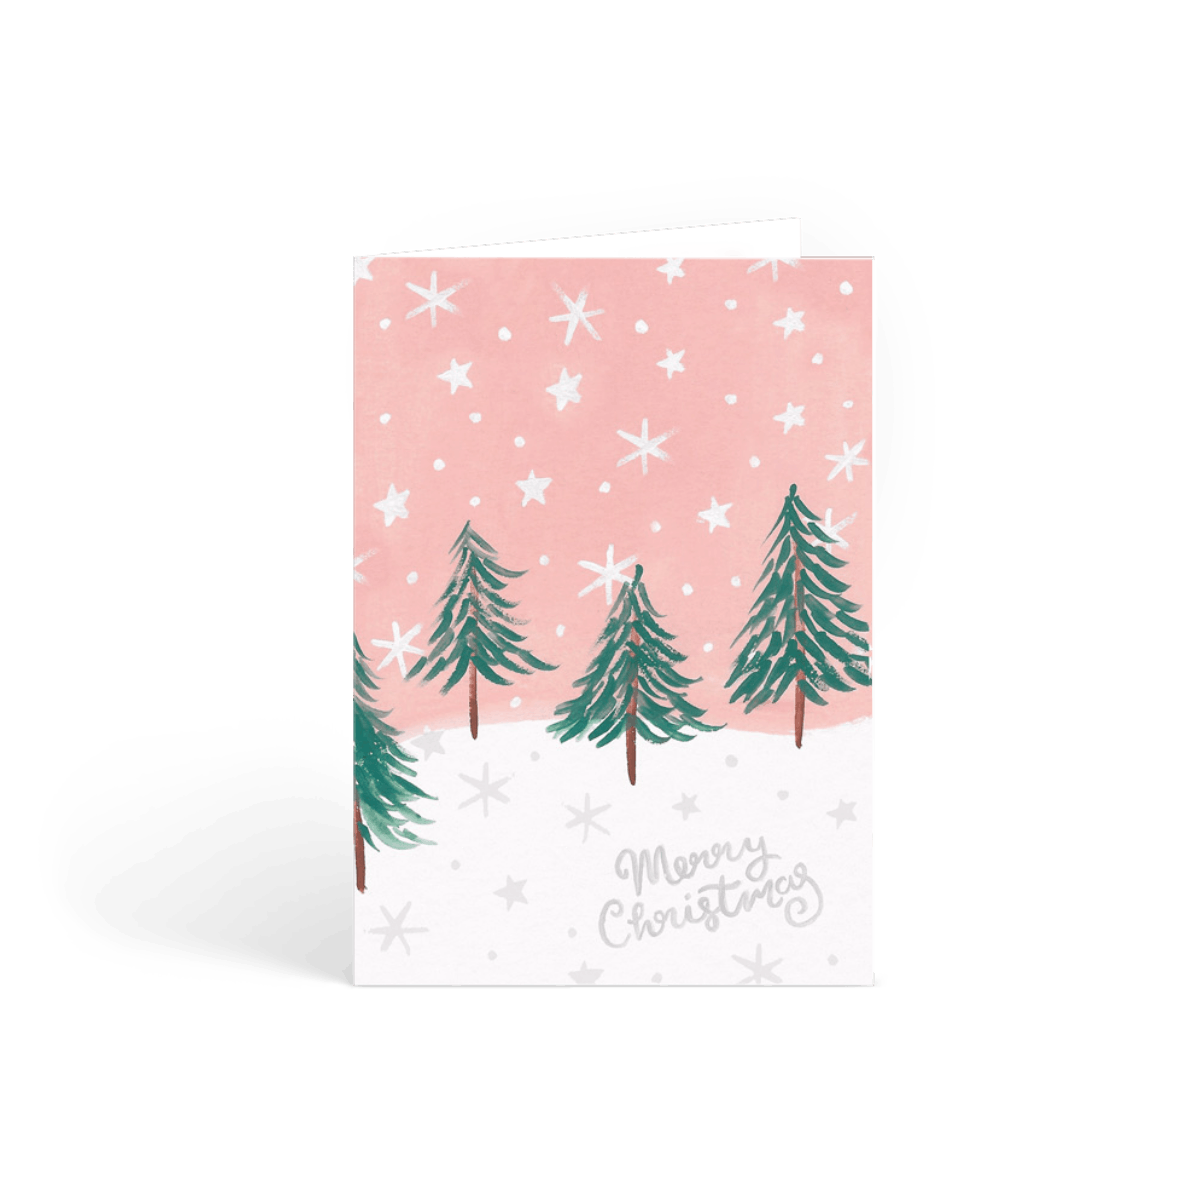 Https%3a%2f%2fwww.papier.com%2fproduct image%2f30190%2f2%2fchristmas fir 7614 front 1570645027.png?ixlib=rb 1.1